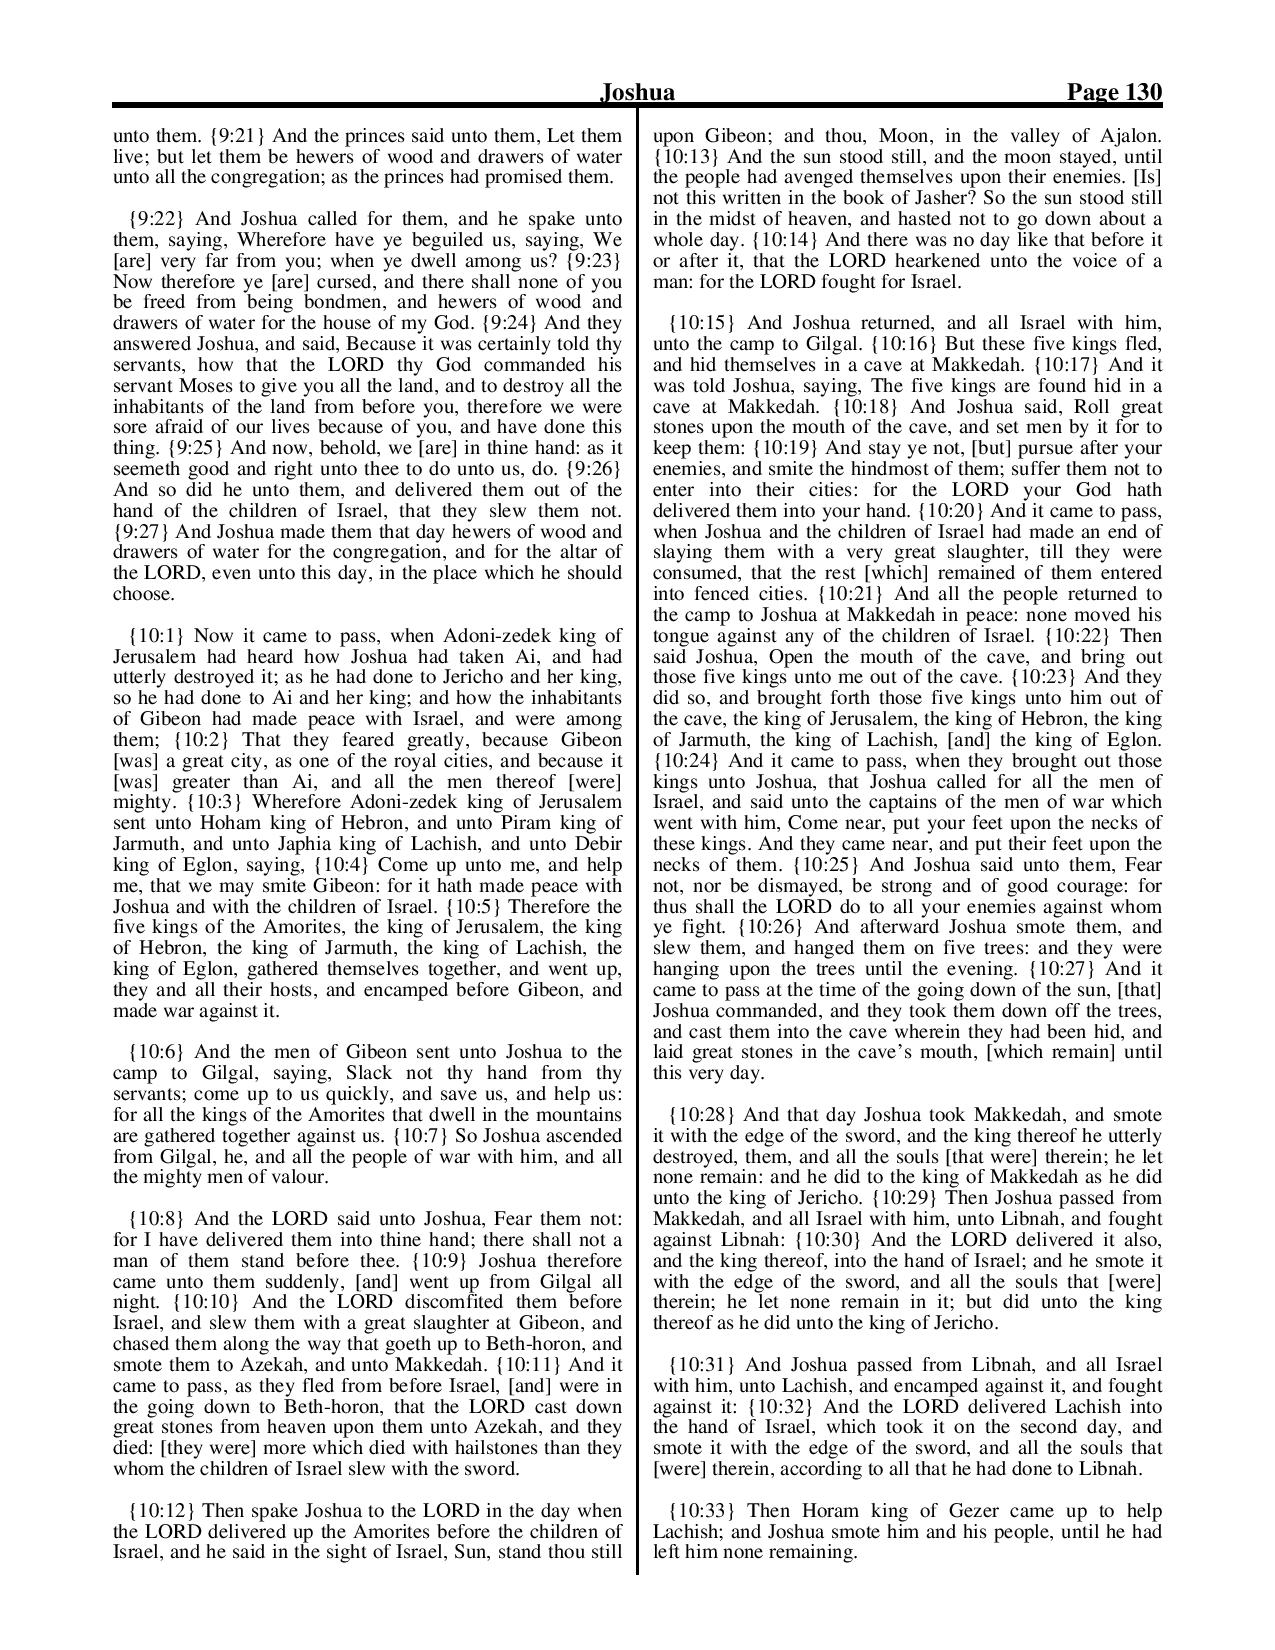 King-James-Bible-KJV-Bible-PDF-page-151